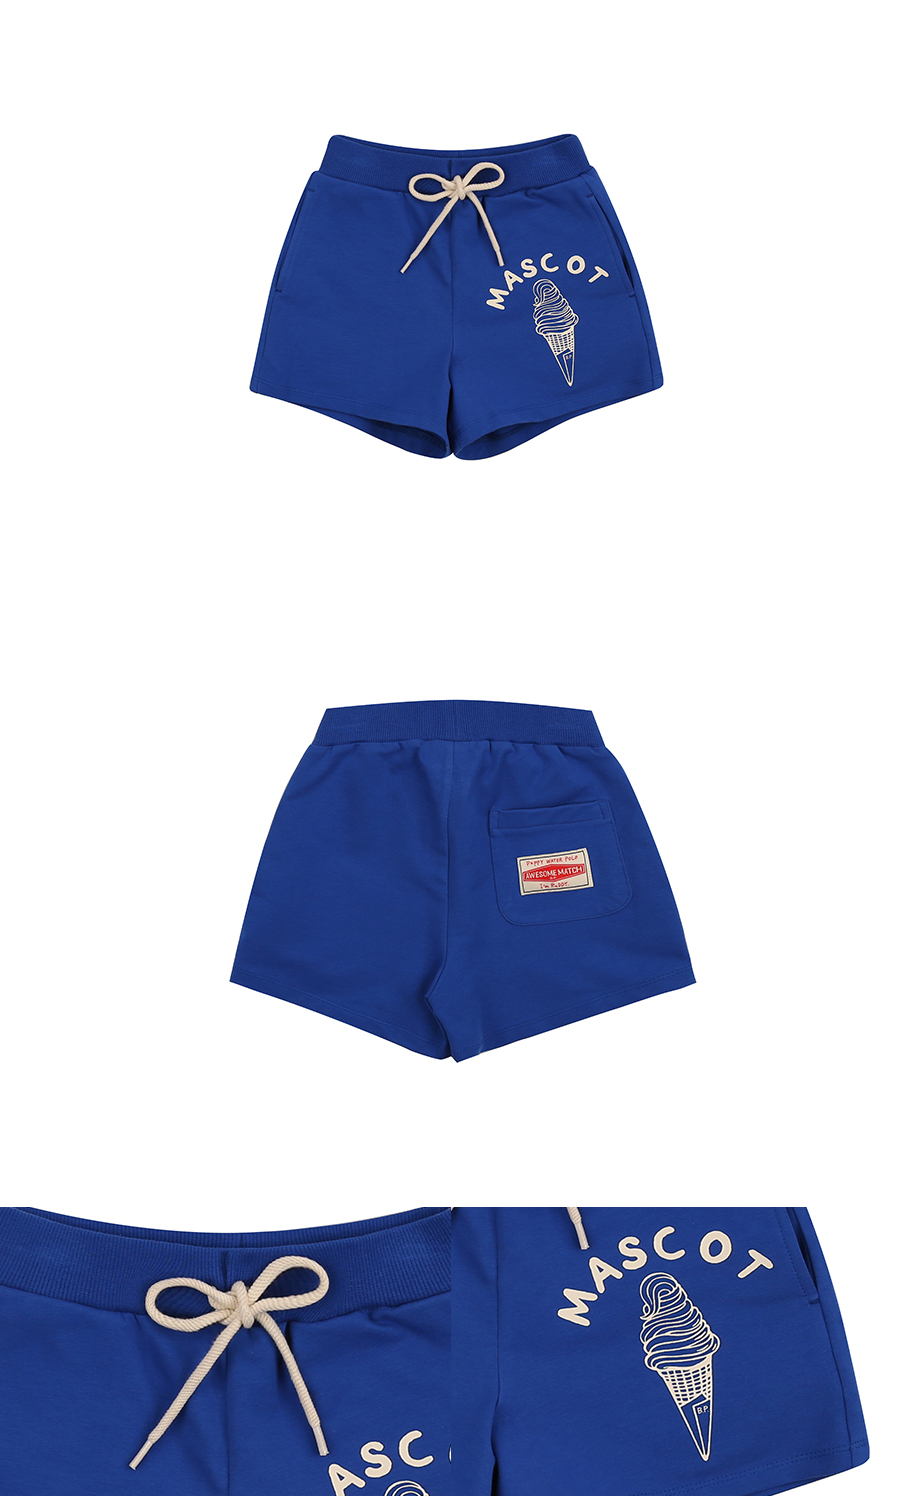 Mascot ice cream sweat shorts 상세 이미지